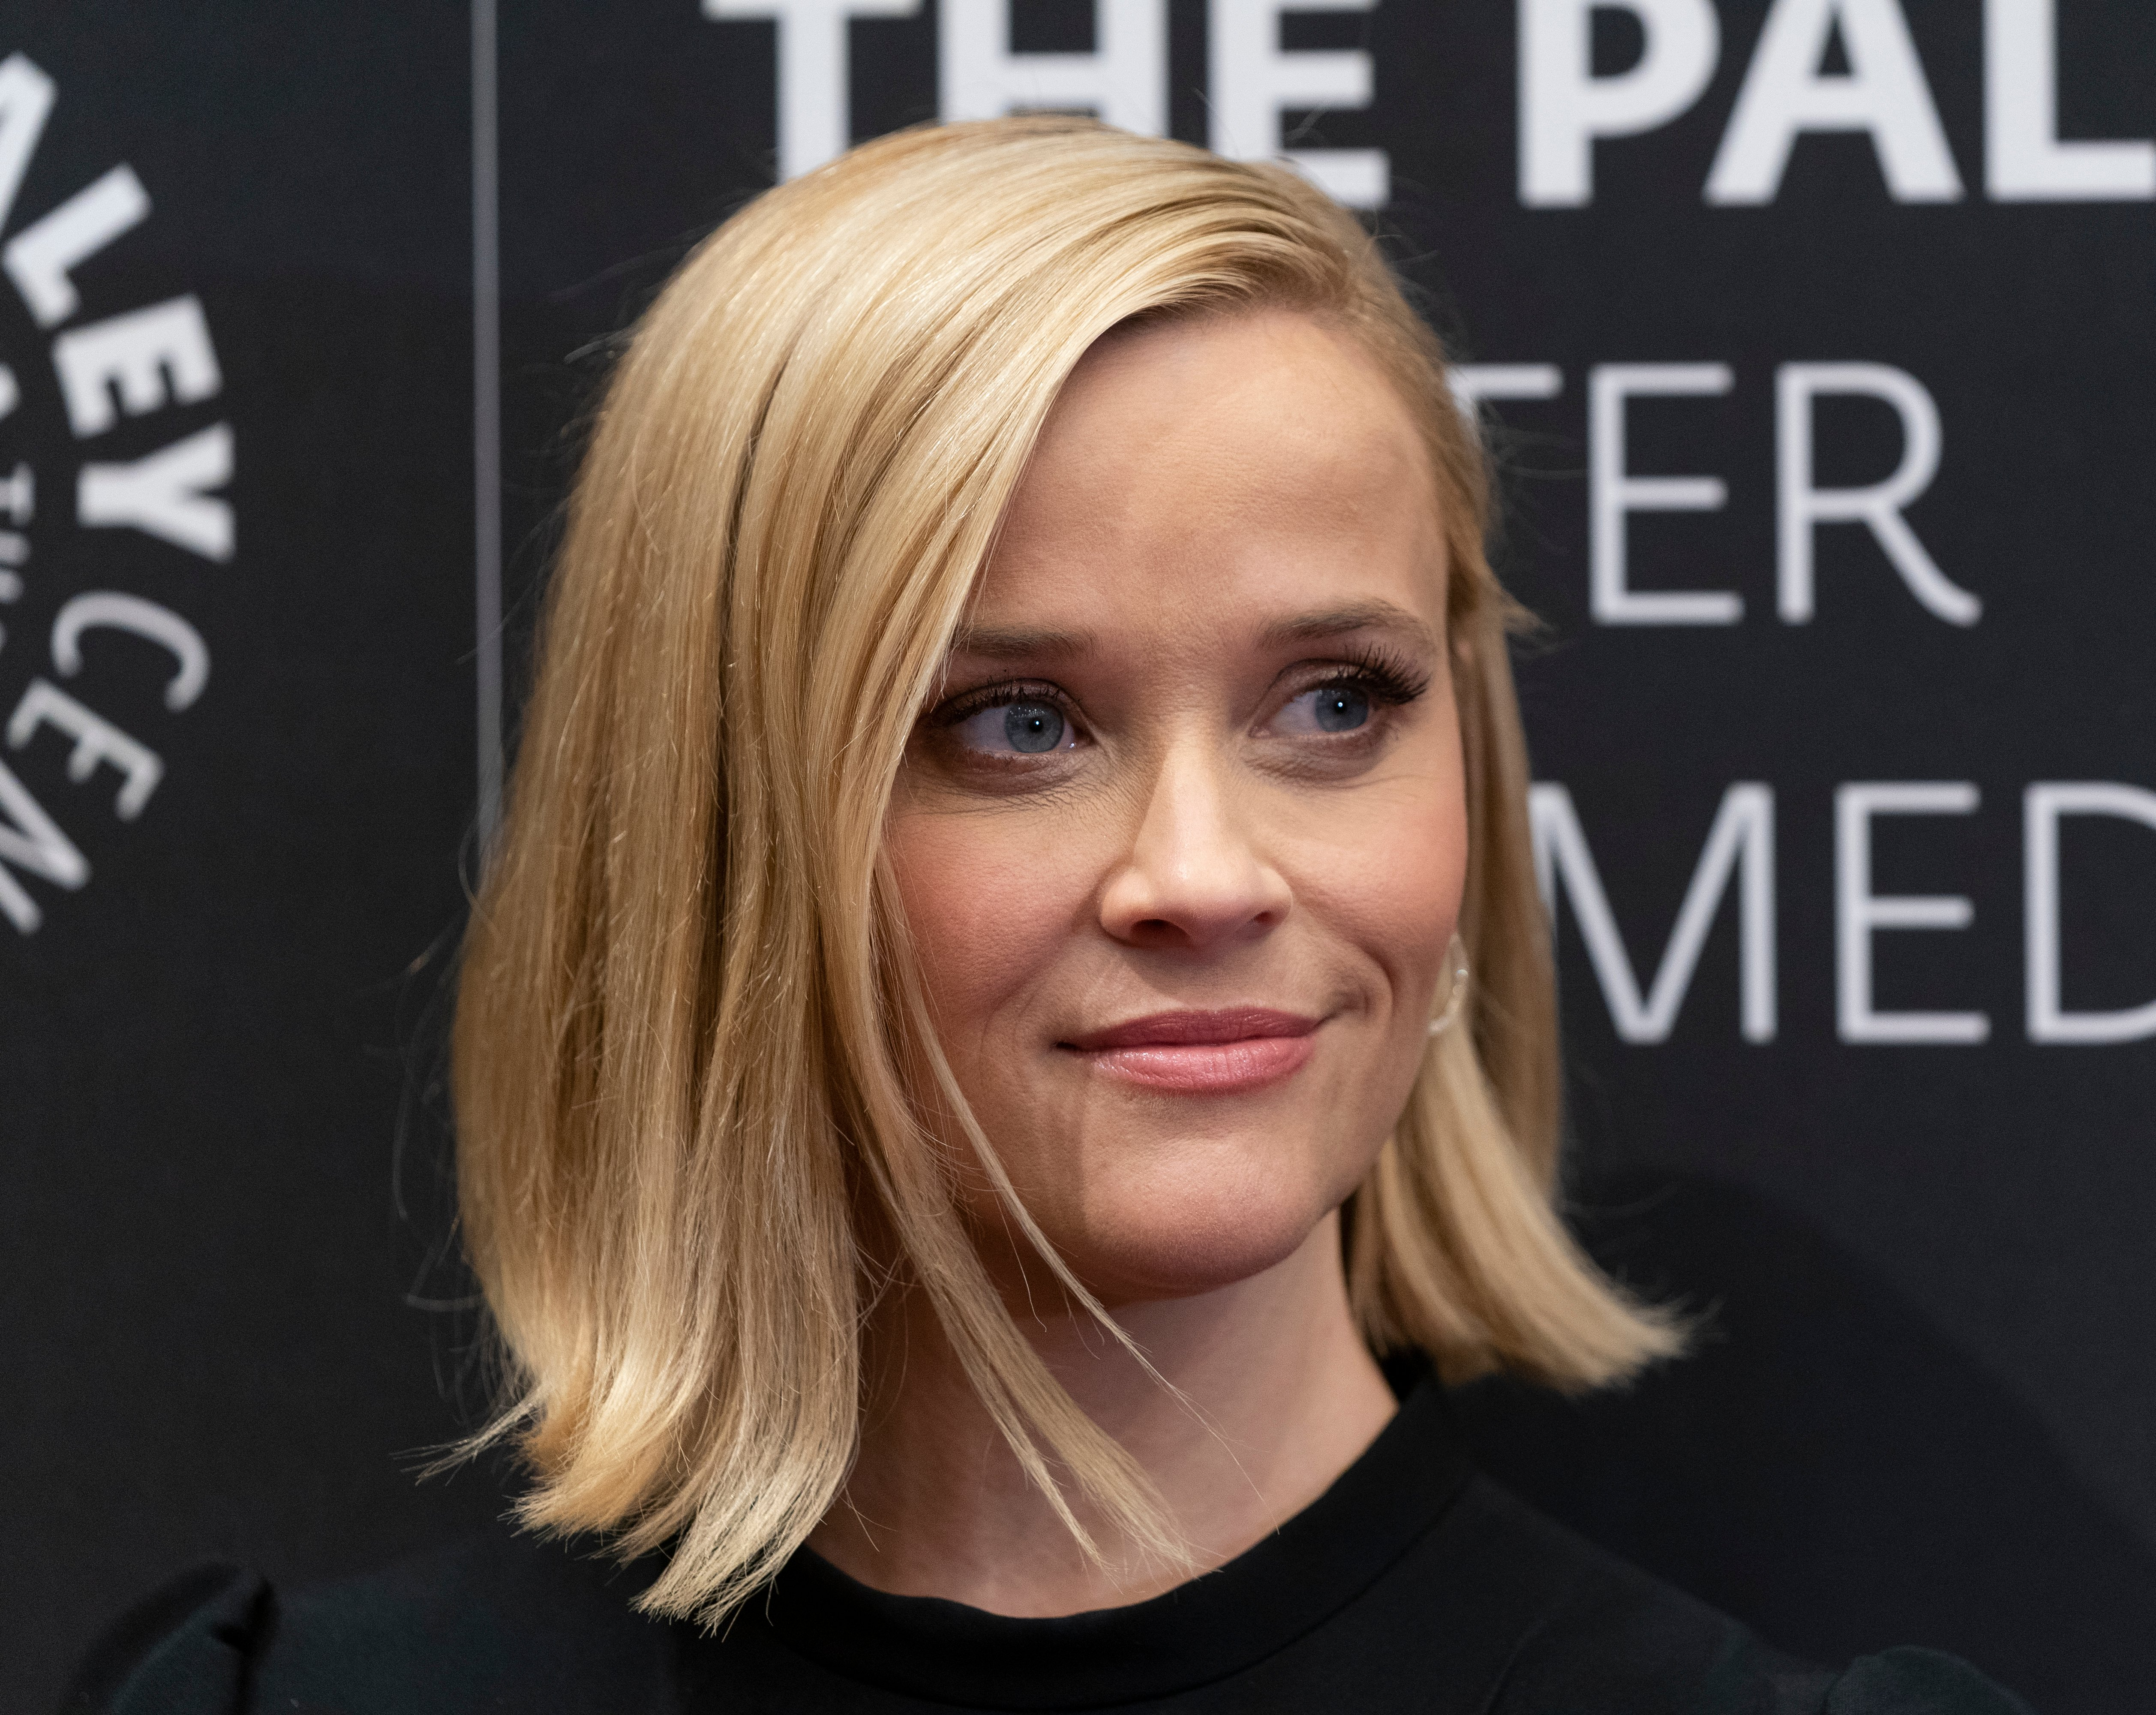 Reese Witherspoon attends Paley Live NY: Apple TV The Morning Show Preview Screening at Paley Center for Media | Photo: Shutterstock